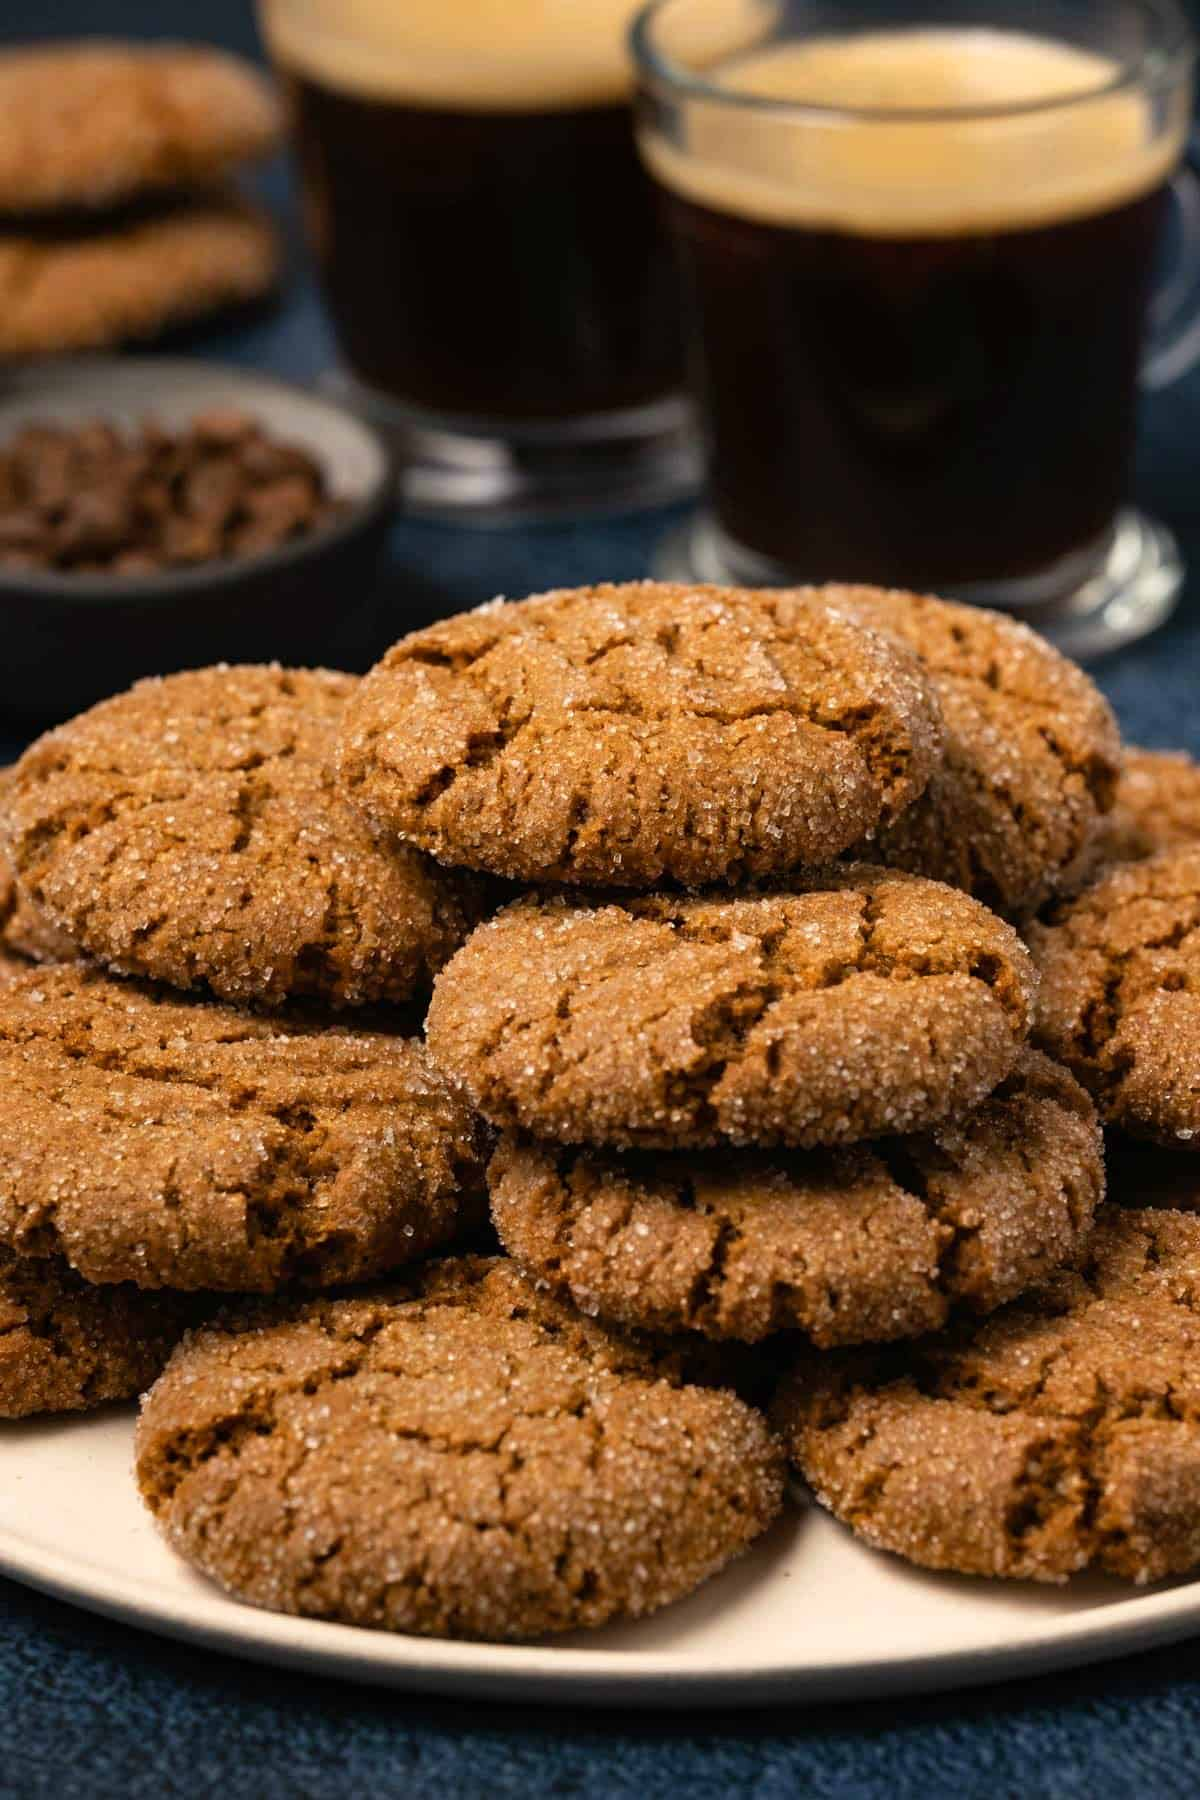 Stack of vegan ginger cookies on a plate.